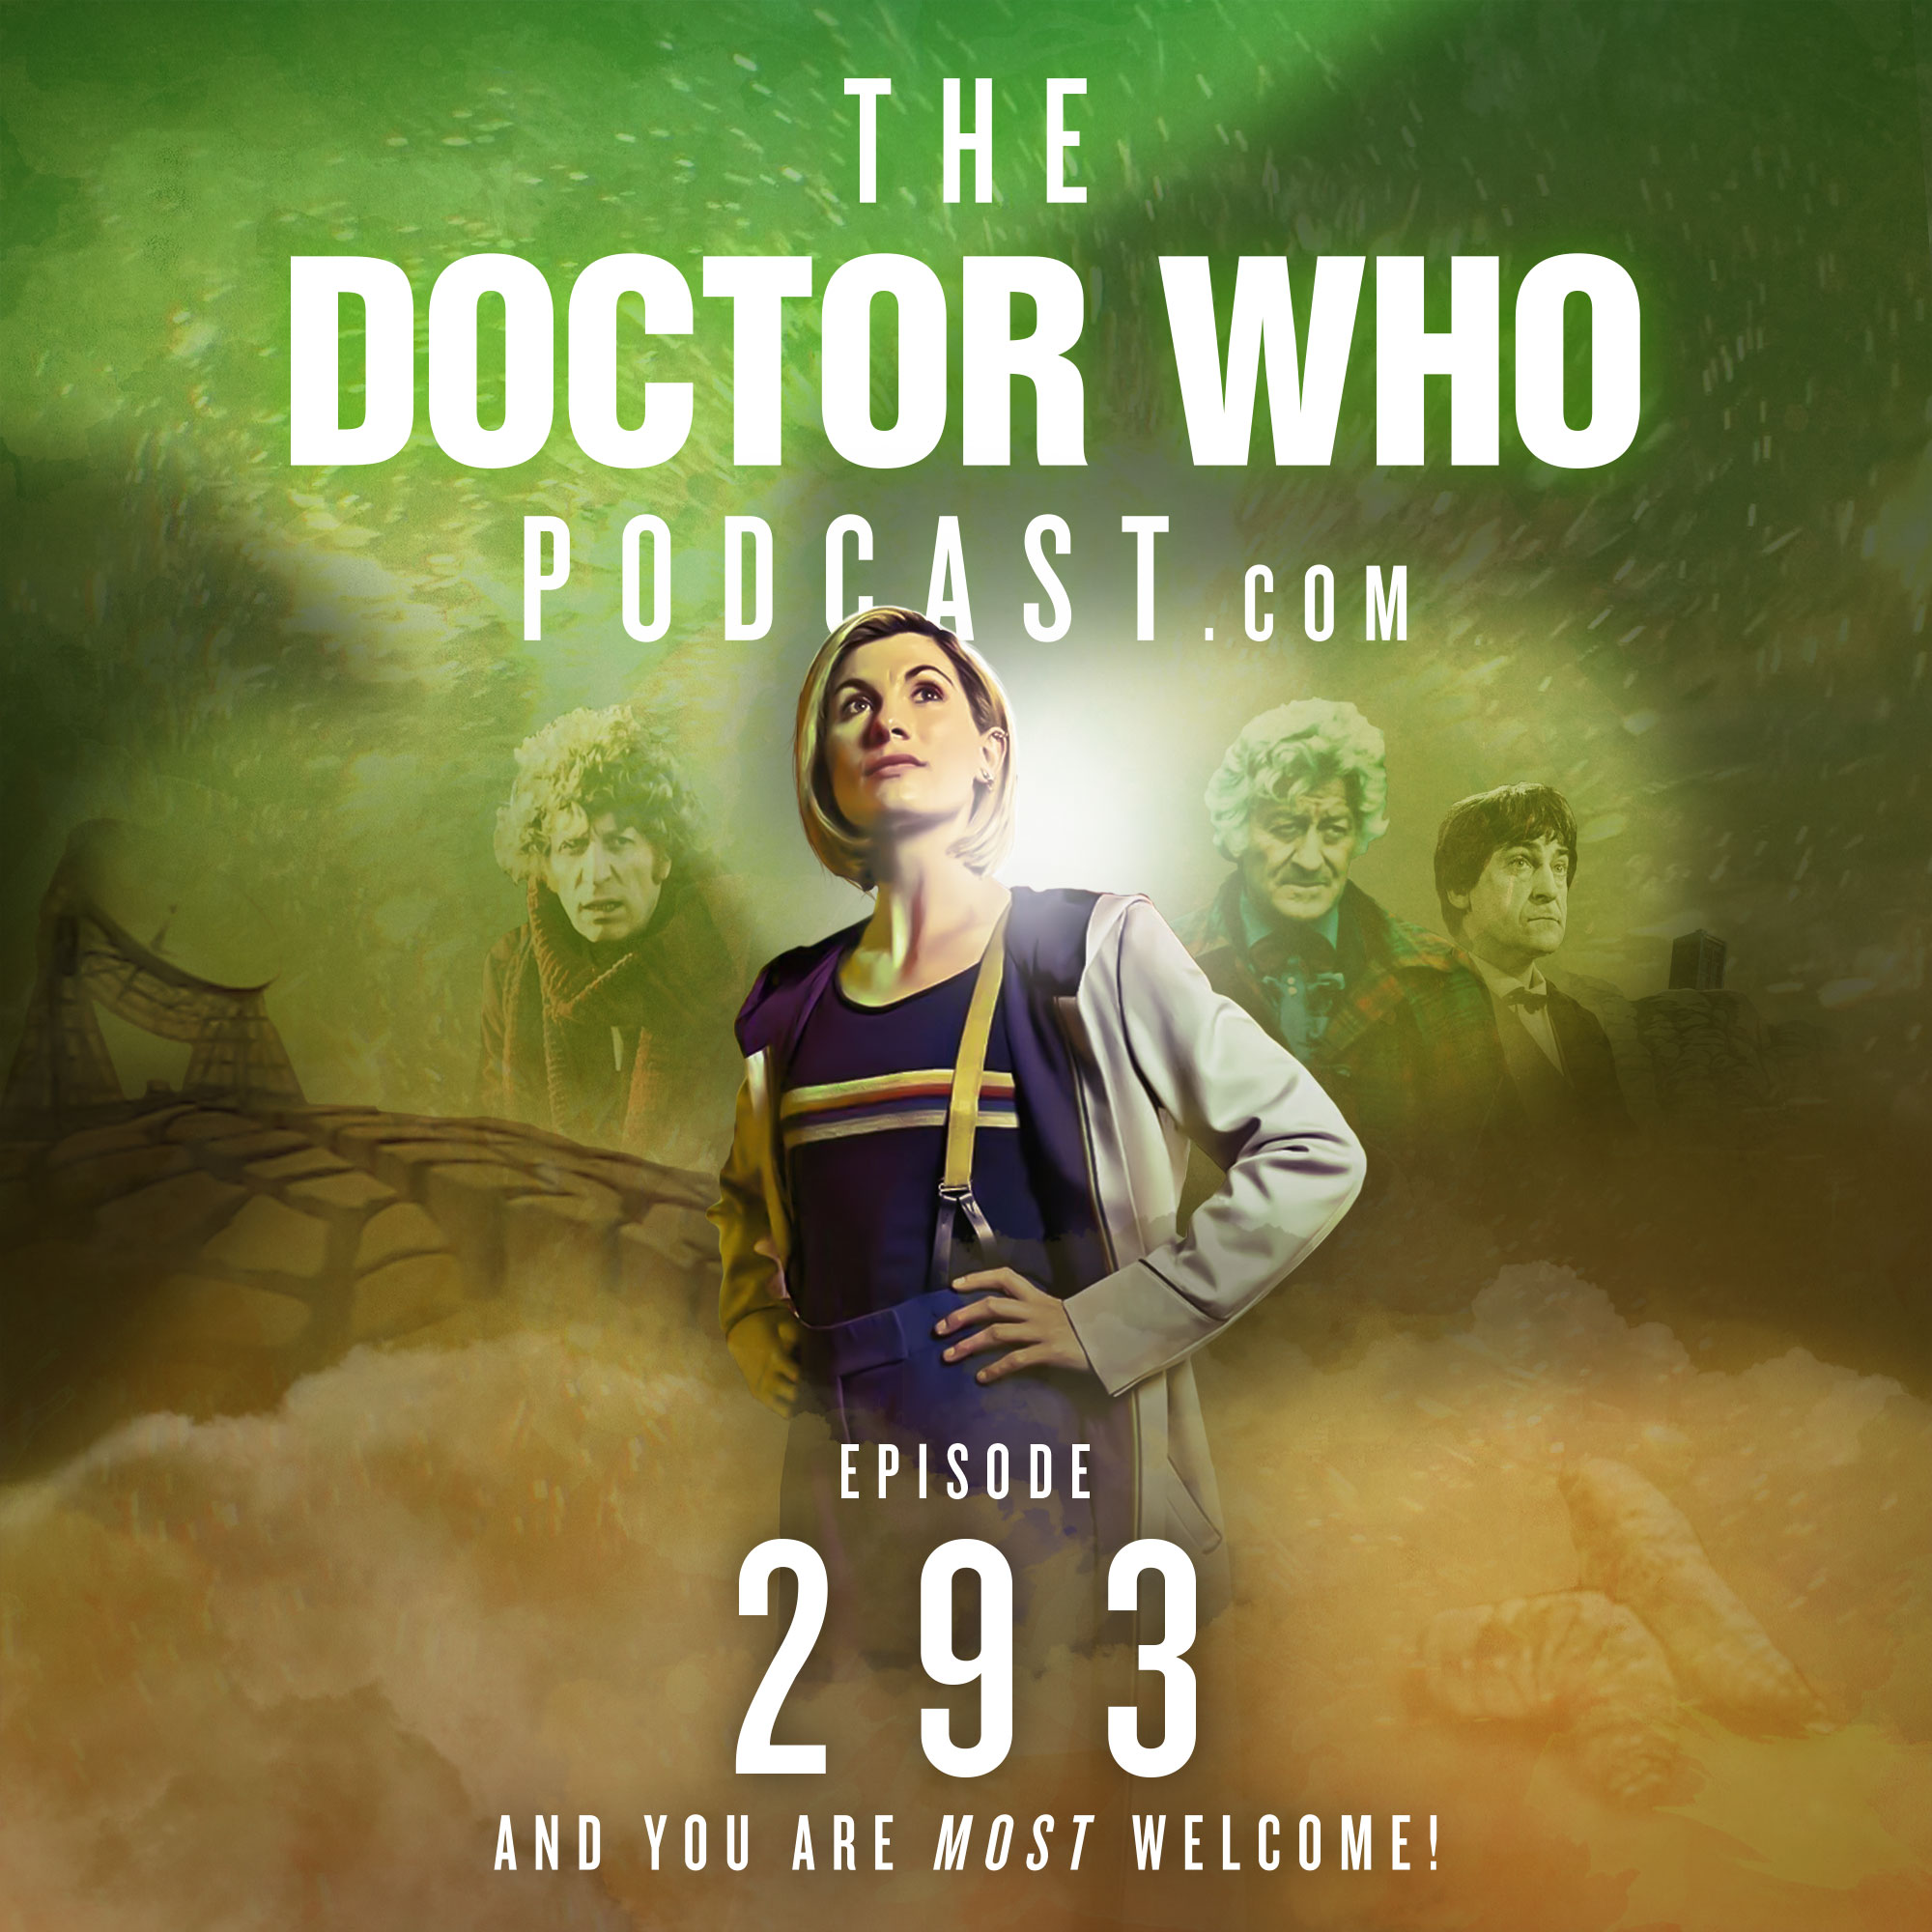 The Doctor Who Podcast Episode #293: The Return of the Campervan